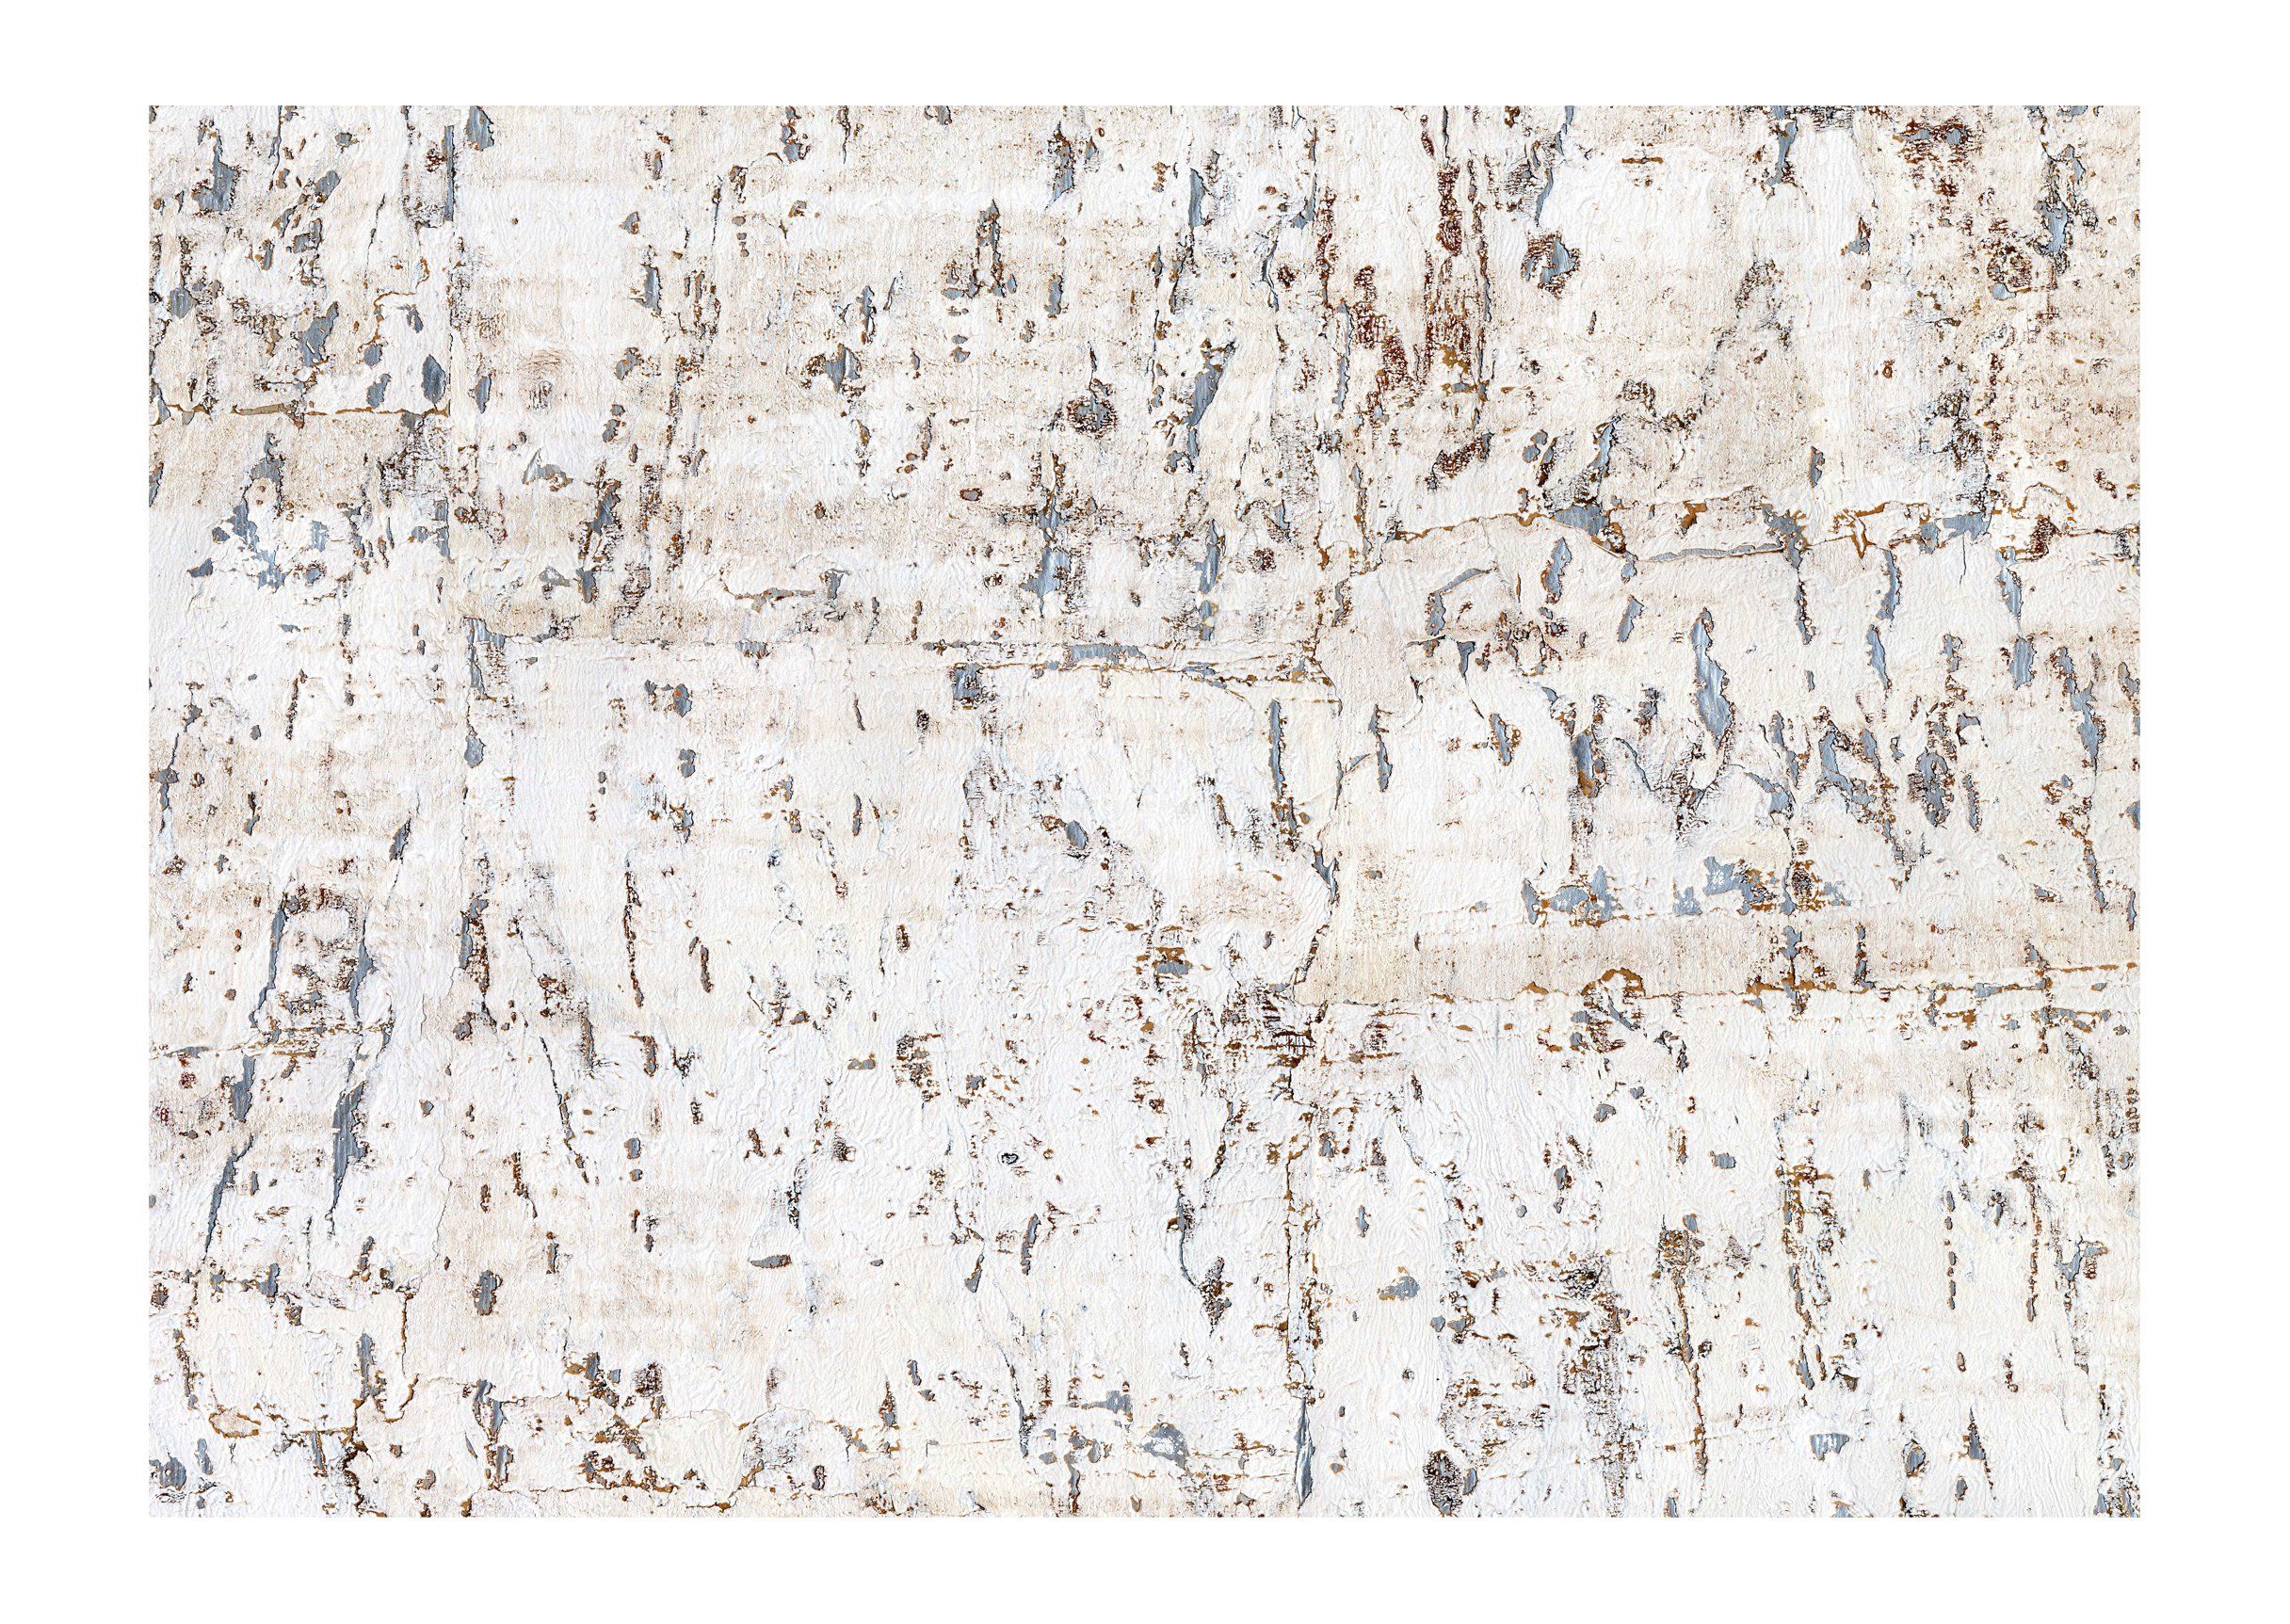 York Wallcoverings CX1200 Candice Olson Dimensional Surfaces Cork on Metallic Wallpaper, White/Silver Metallic